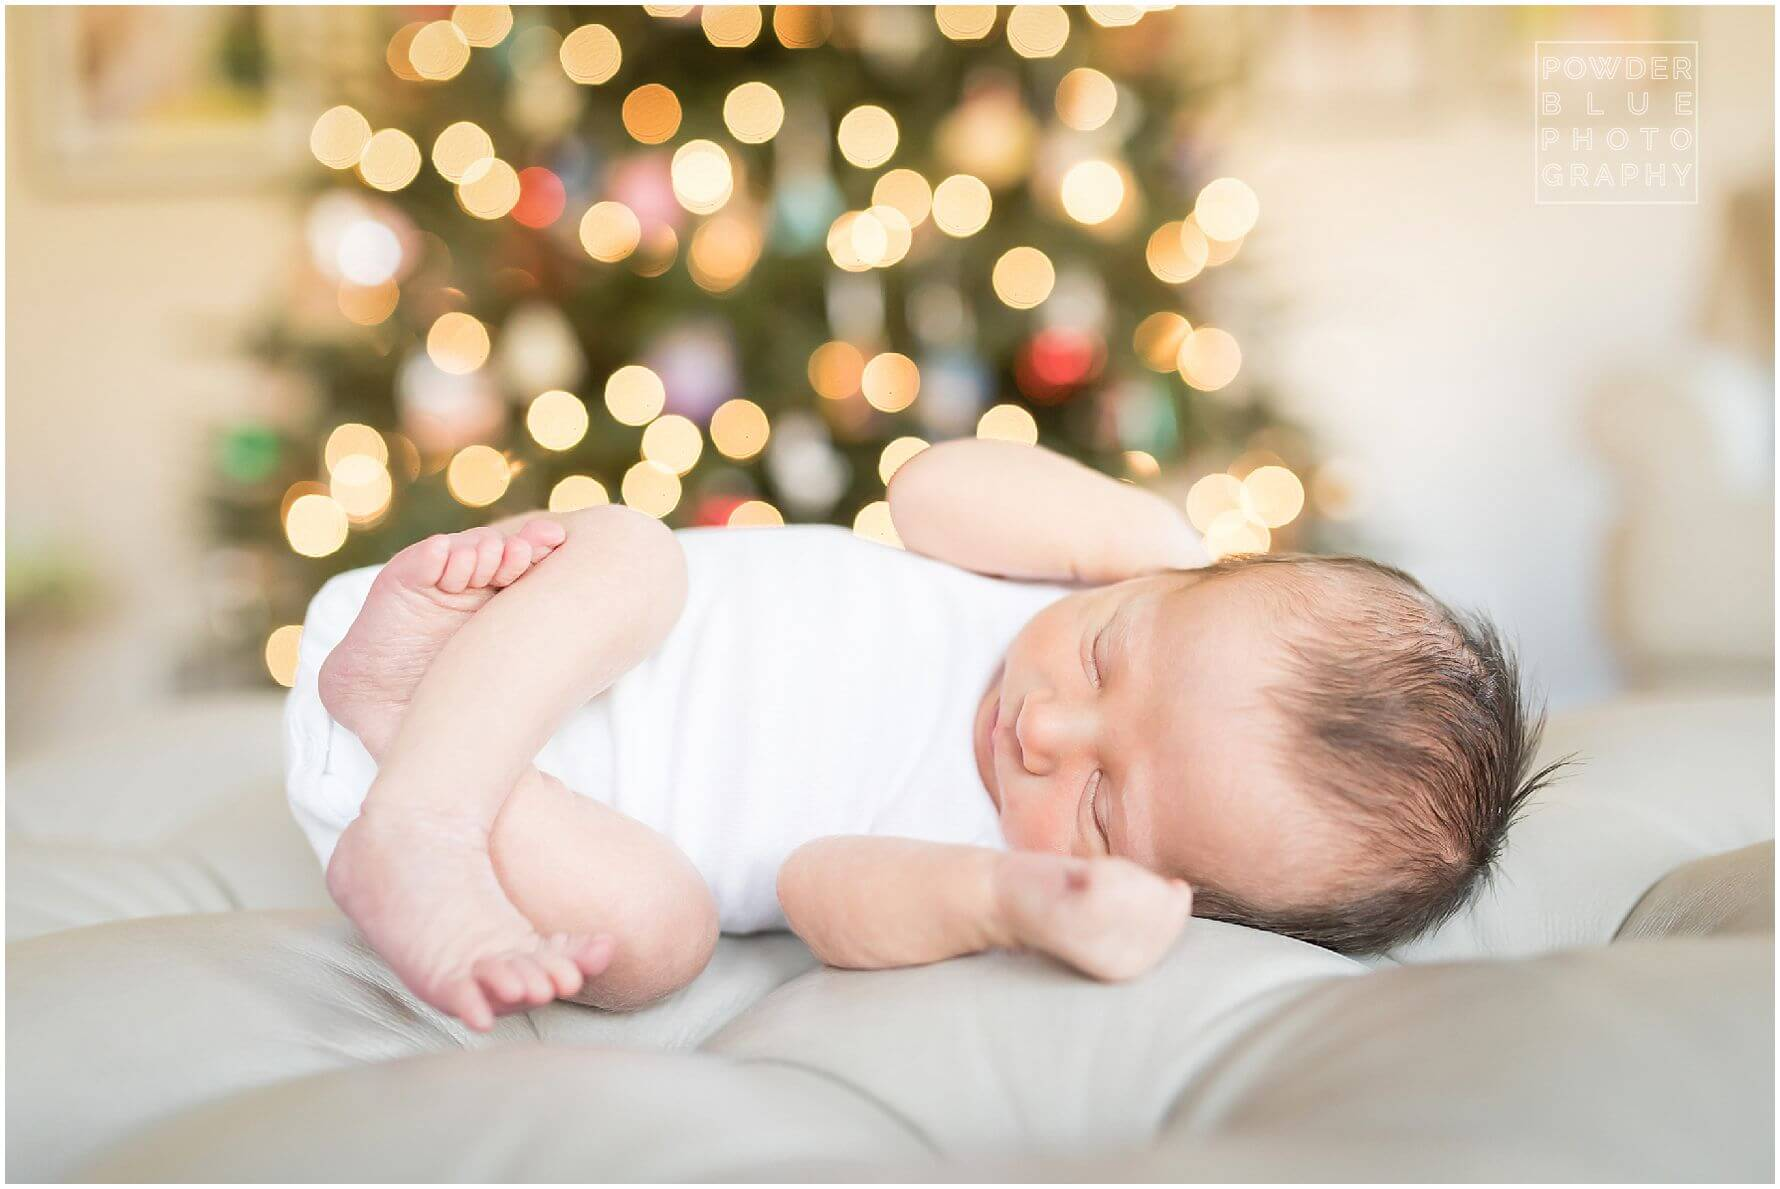 pittsburgh newborn photographer missy timko photographed this baby iboy in front of the christmas tree with twinkling lights behind him. wide open aperture with christmas tree as backdrop.